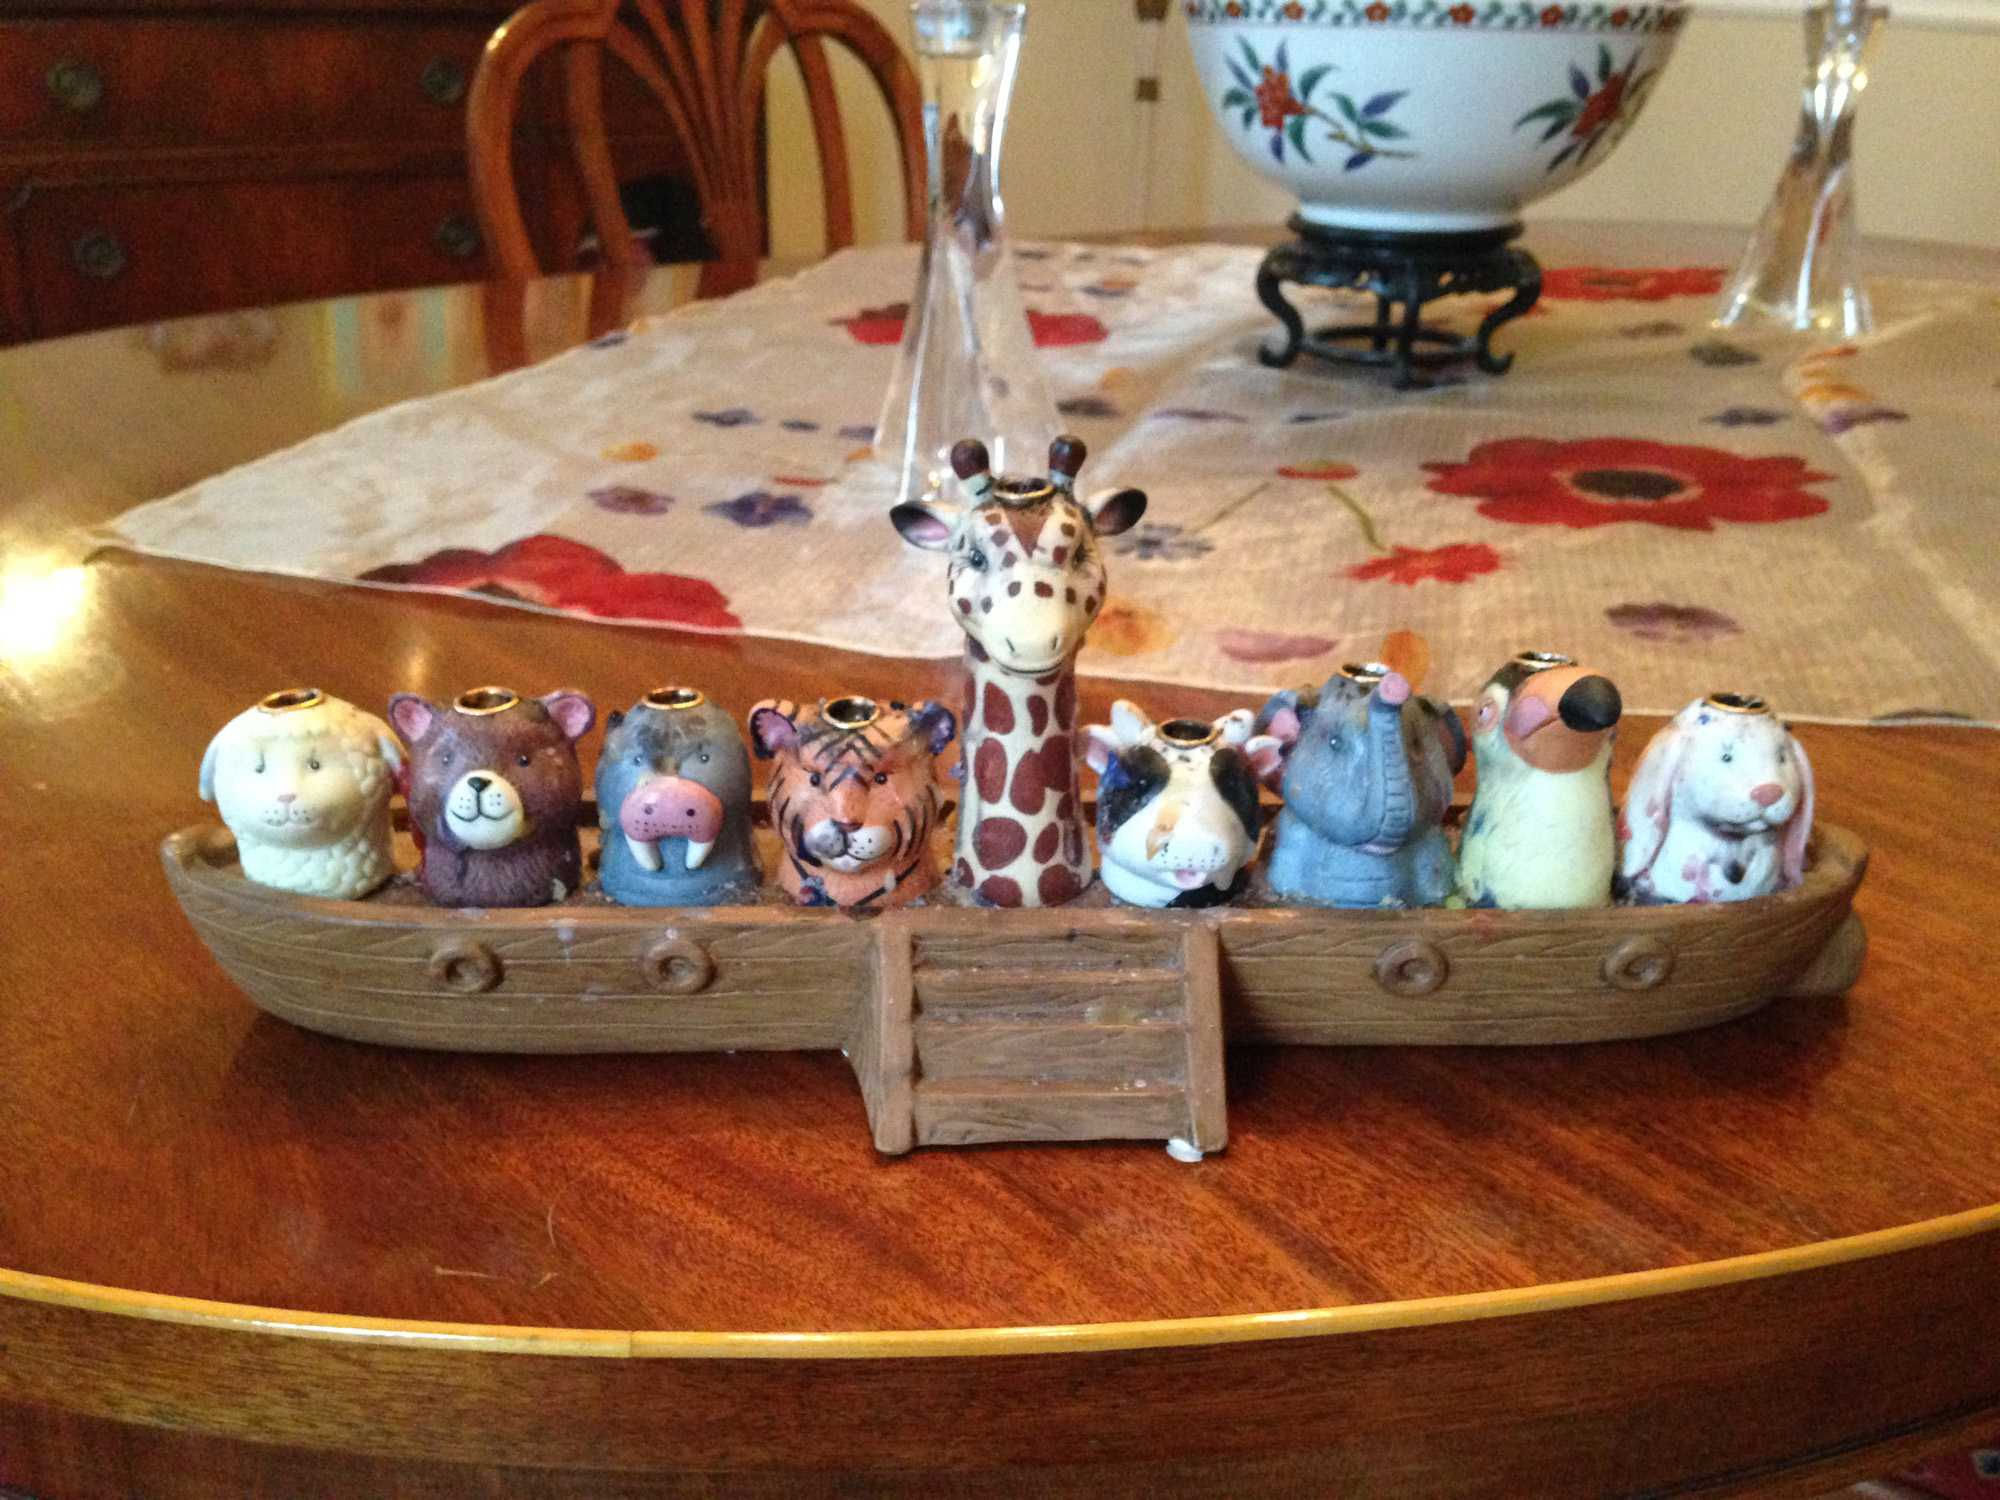 Sophomore Stephanie Krueger's menorah is pictured. It is modeled after Noah's Ark. The Kruegers have a more traditional-looking menorah as well.